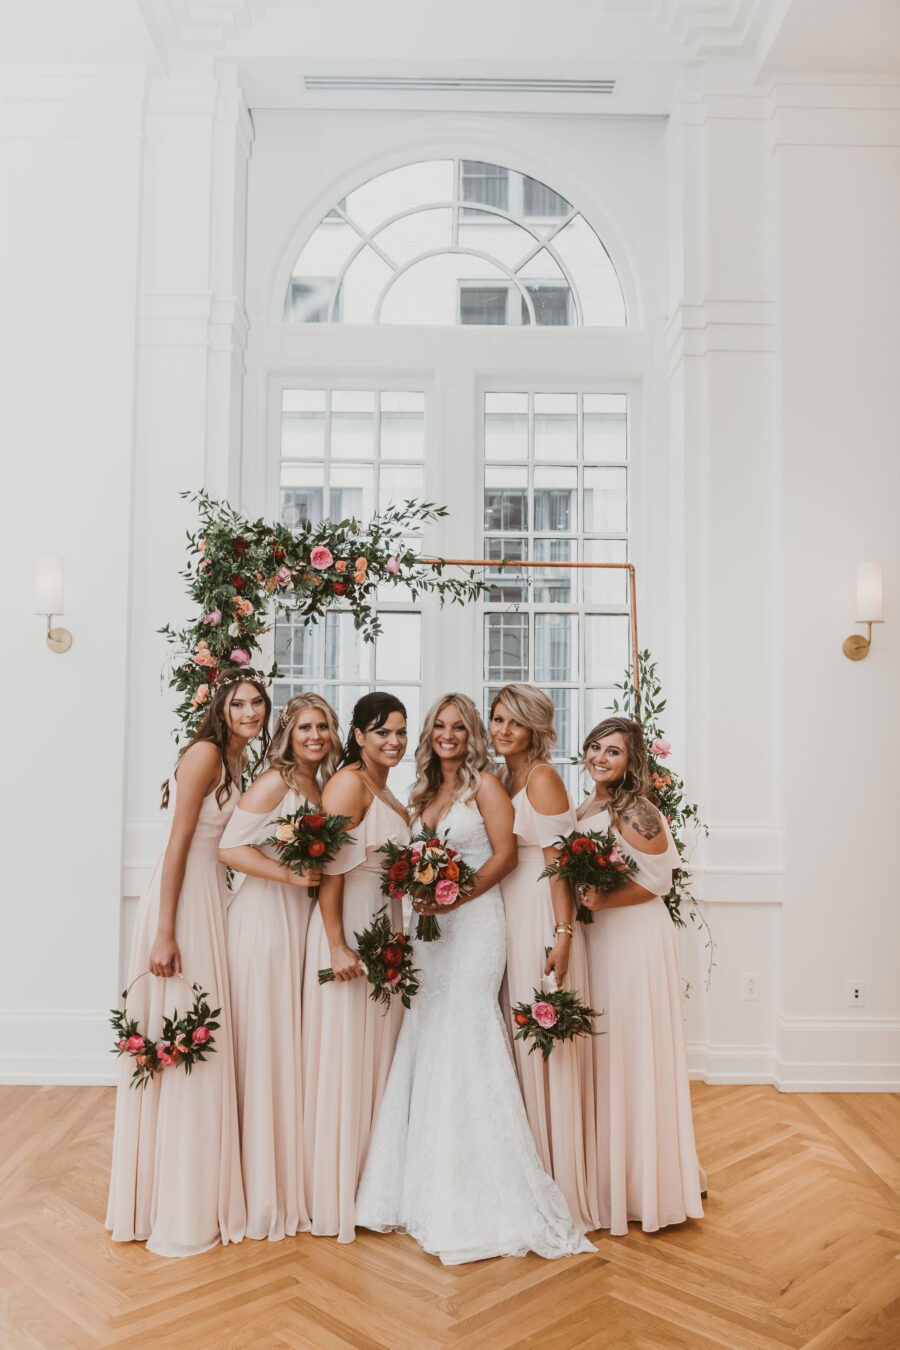 Blush pink bridesmaids dresses: Summer Tennessee Wedding at Noelle from Jayde J. Smith Events featured on Nashville Bride Guide